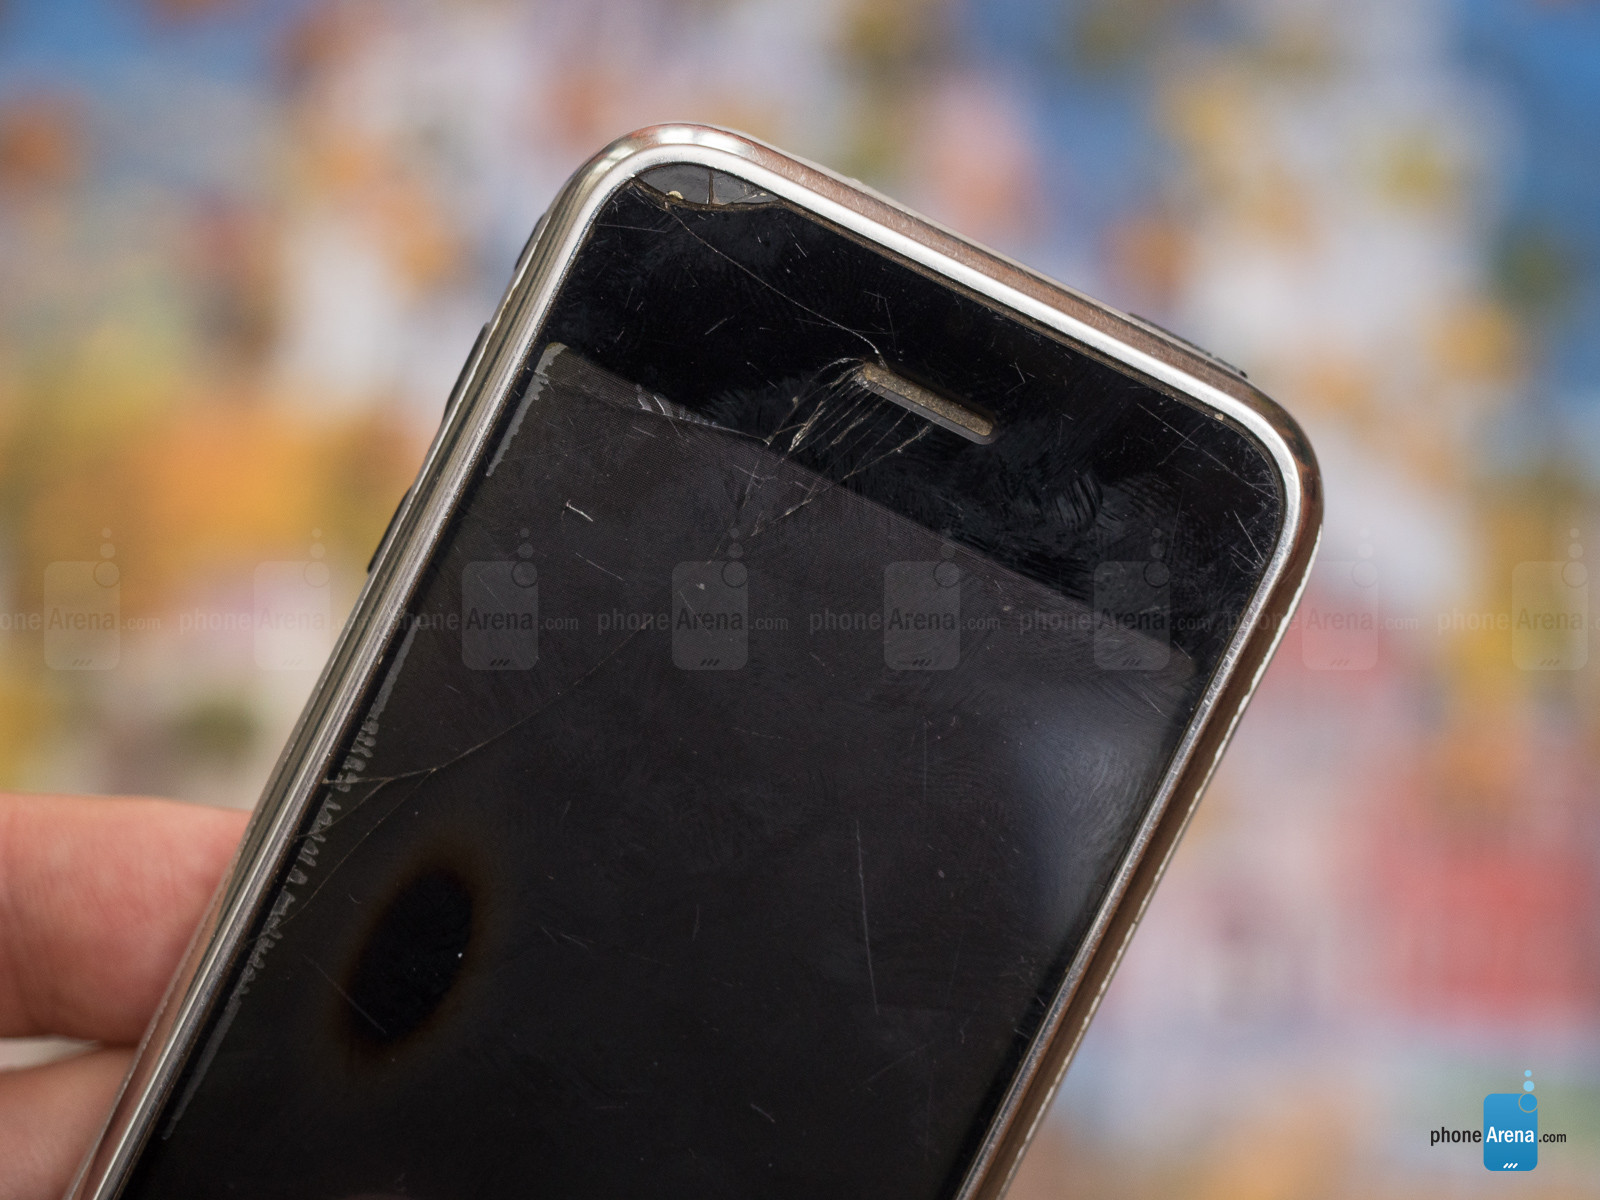 1498804267_bruised-and-battered-but-not-broken-10-years-on-my-iphone-2g-still-works-12.jpg